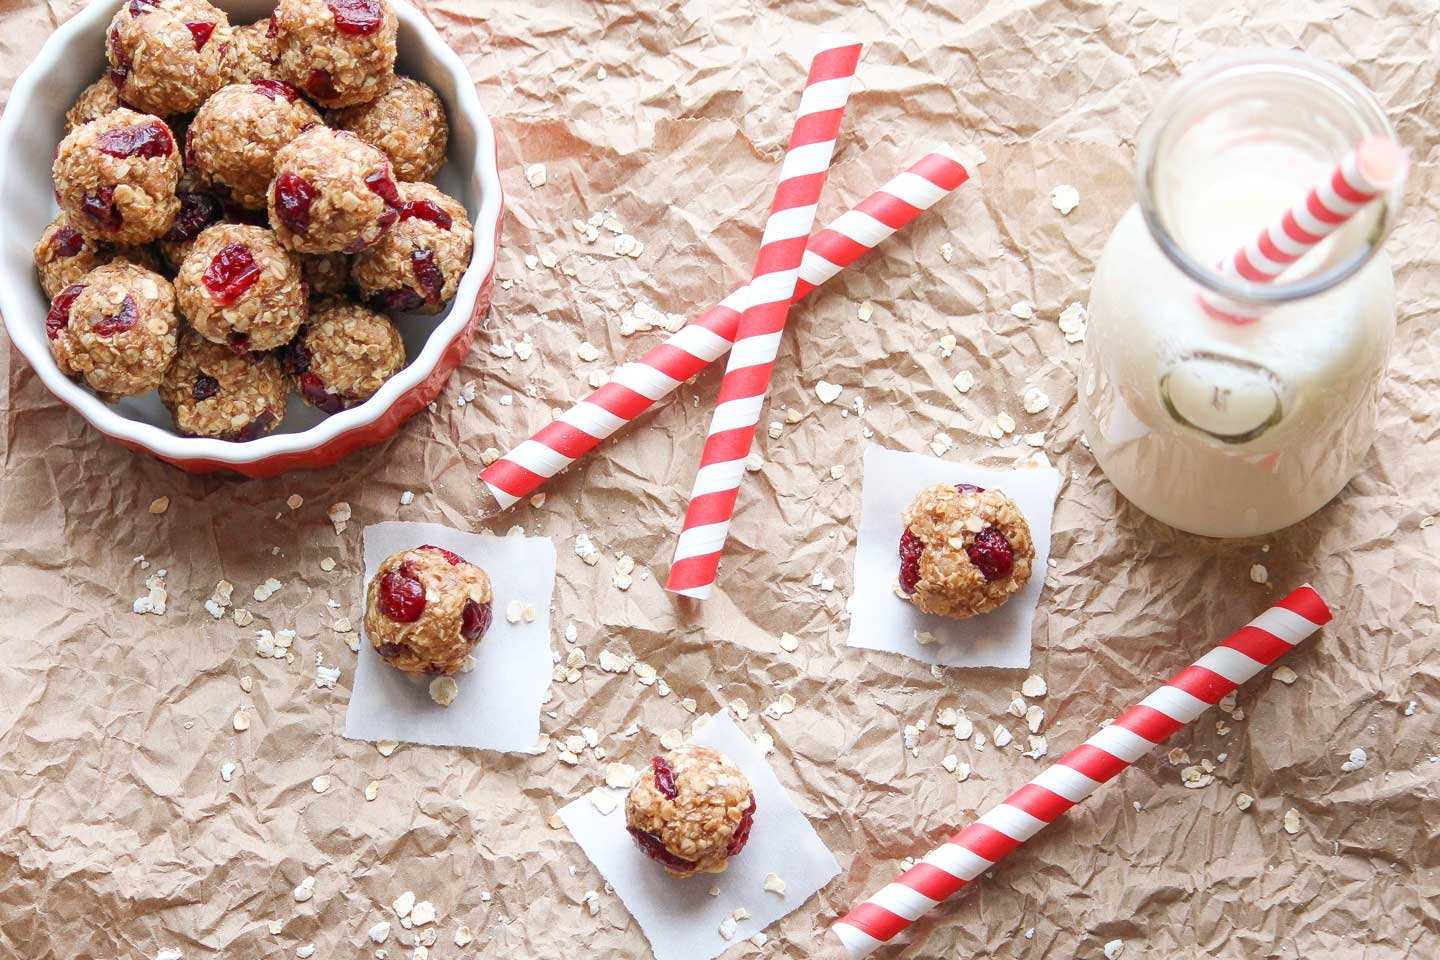 Overhead of 3 peanut butter balls on white paper squares, with milk in an old-fashioned bottle and a bowl of extra balls.